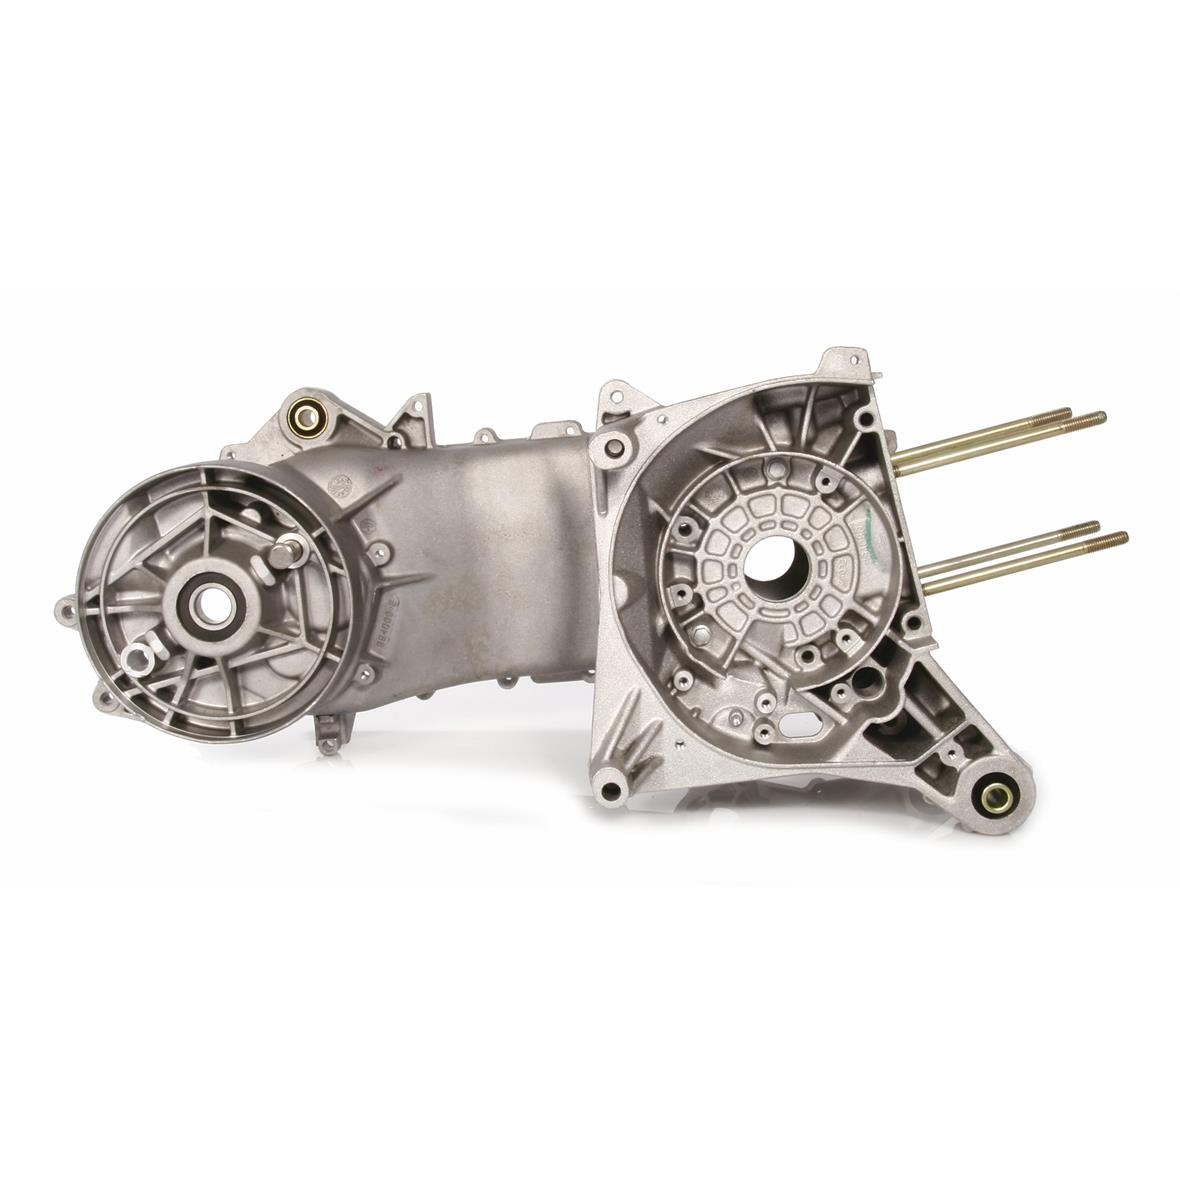 Product Image for 'Engine casing PIAGGIO GileraRunner 180, for drum brakeTitle'